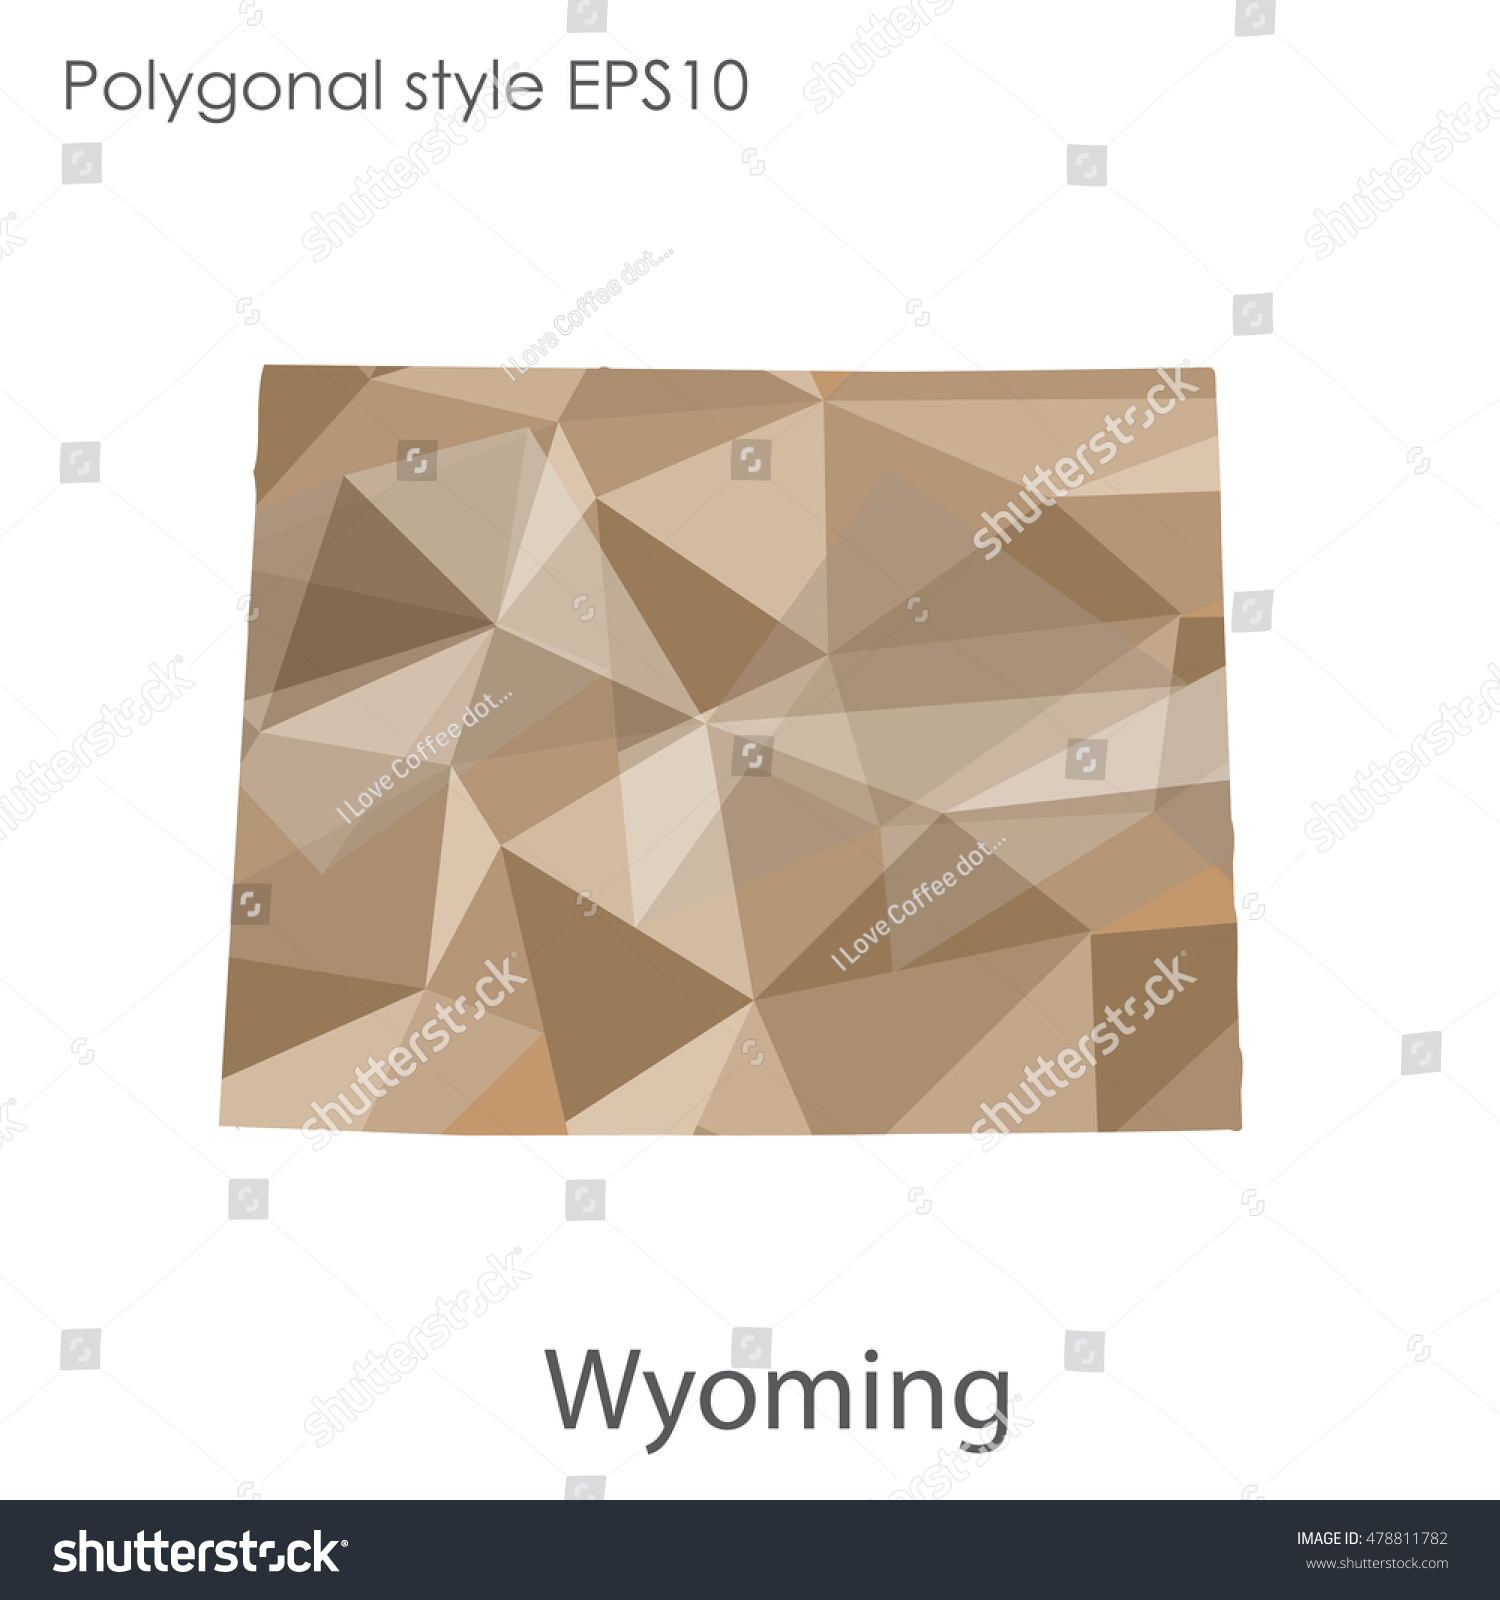 Wyoming State Map Geometric Polygonal Style Abstract Stock Vector ...